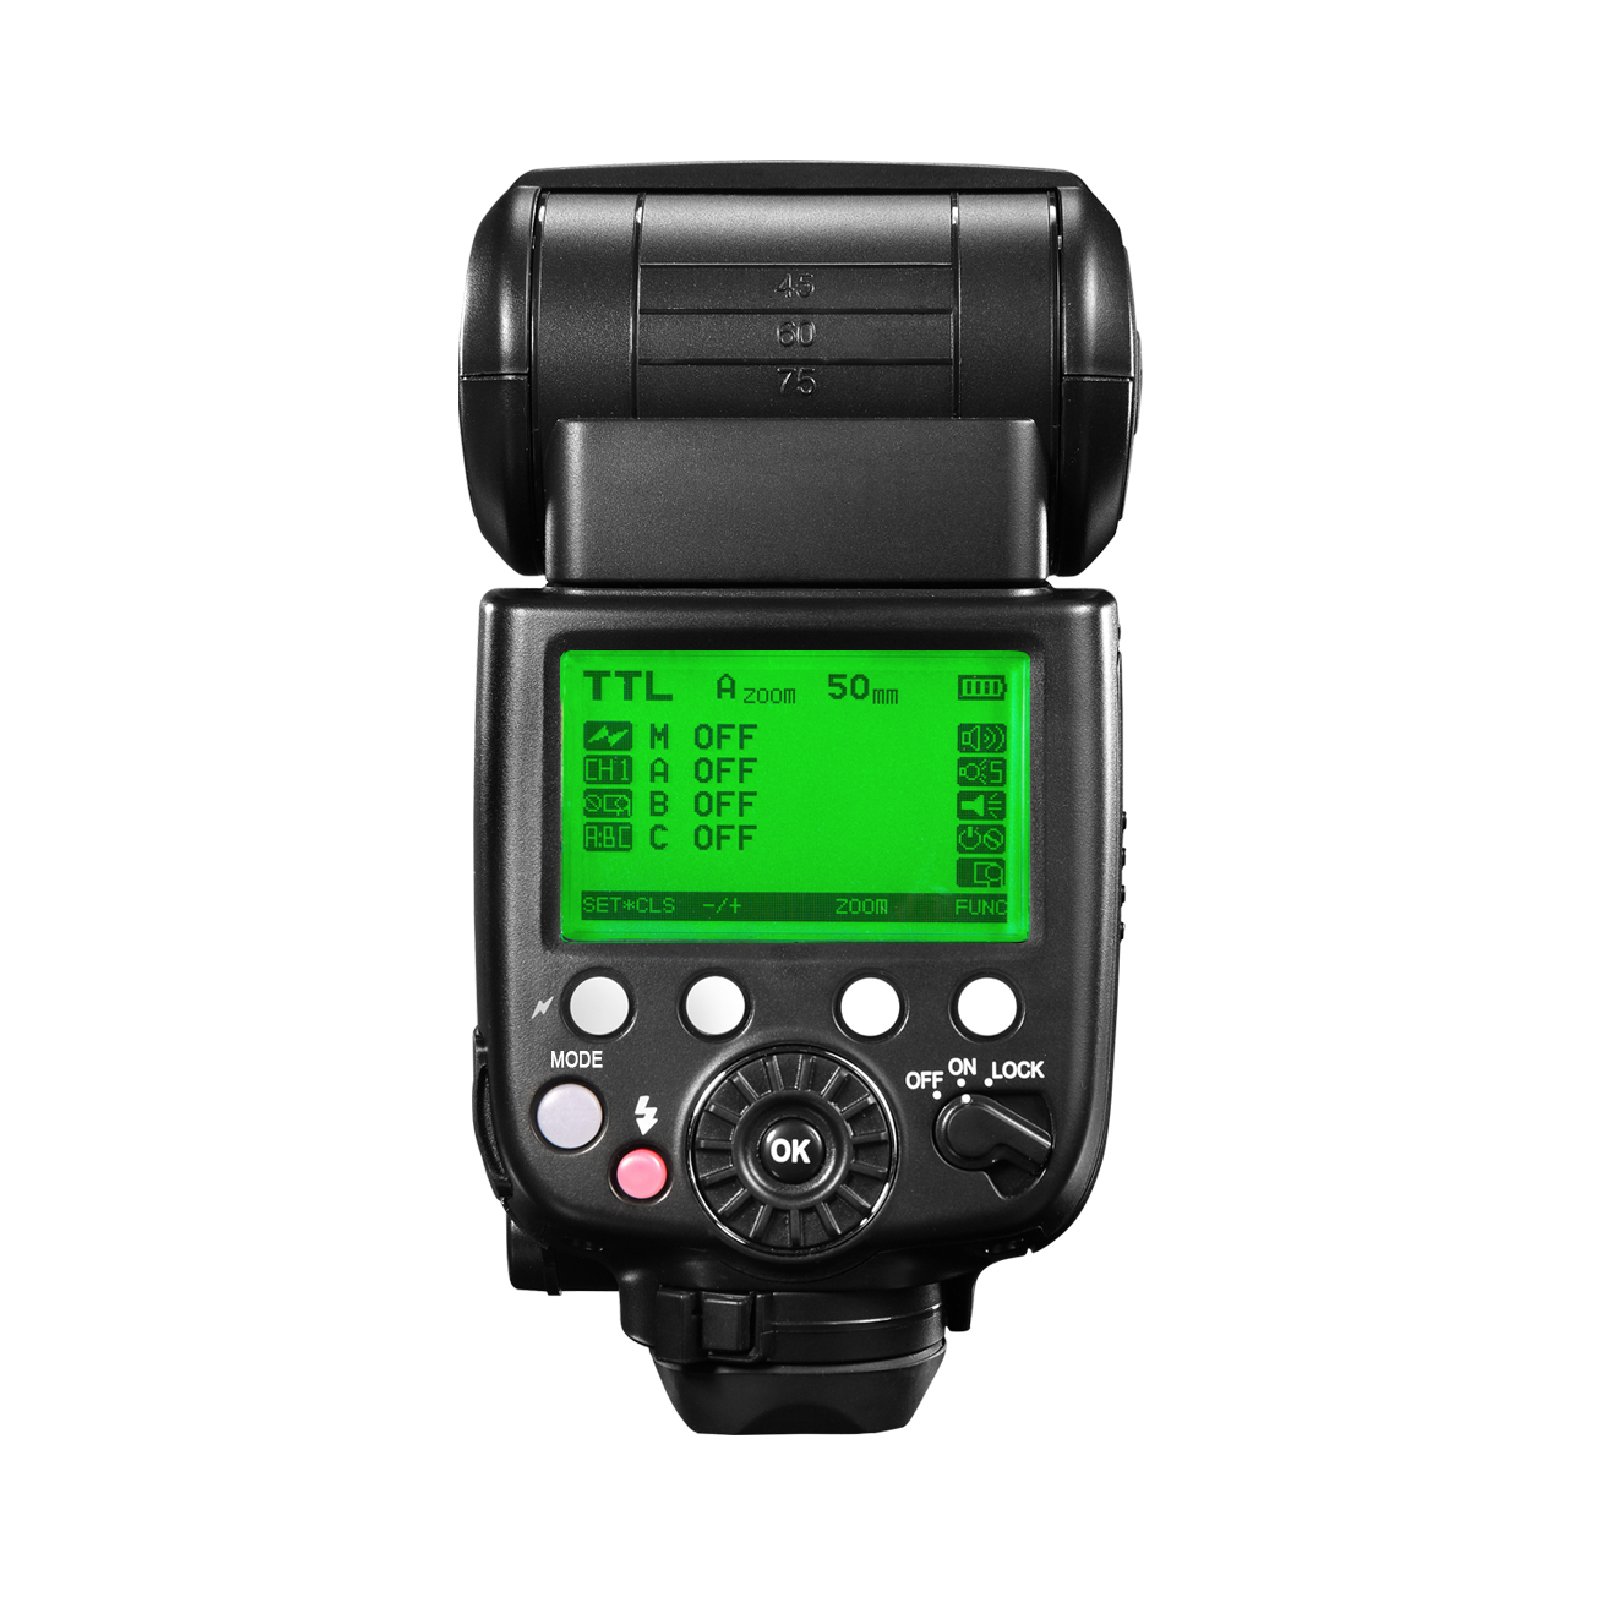 Pixel X800N Pro Speedlite, high speed synchronization and powerful performance.